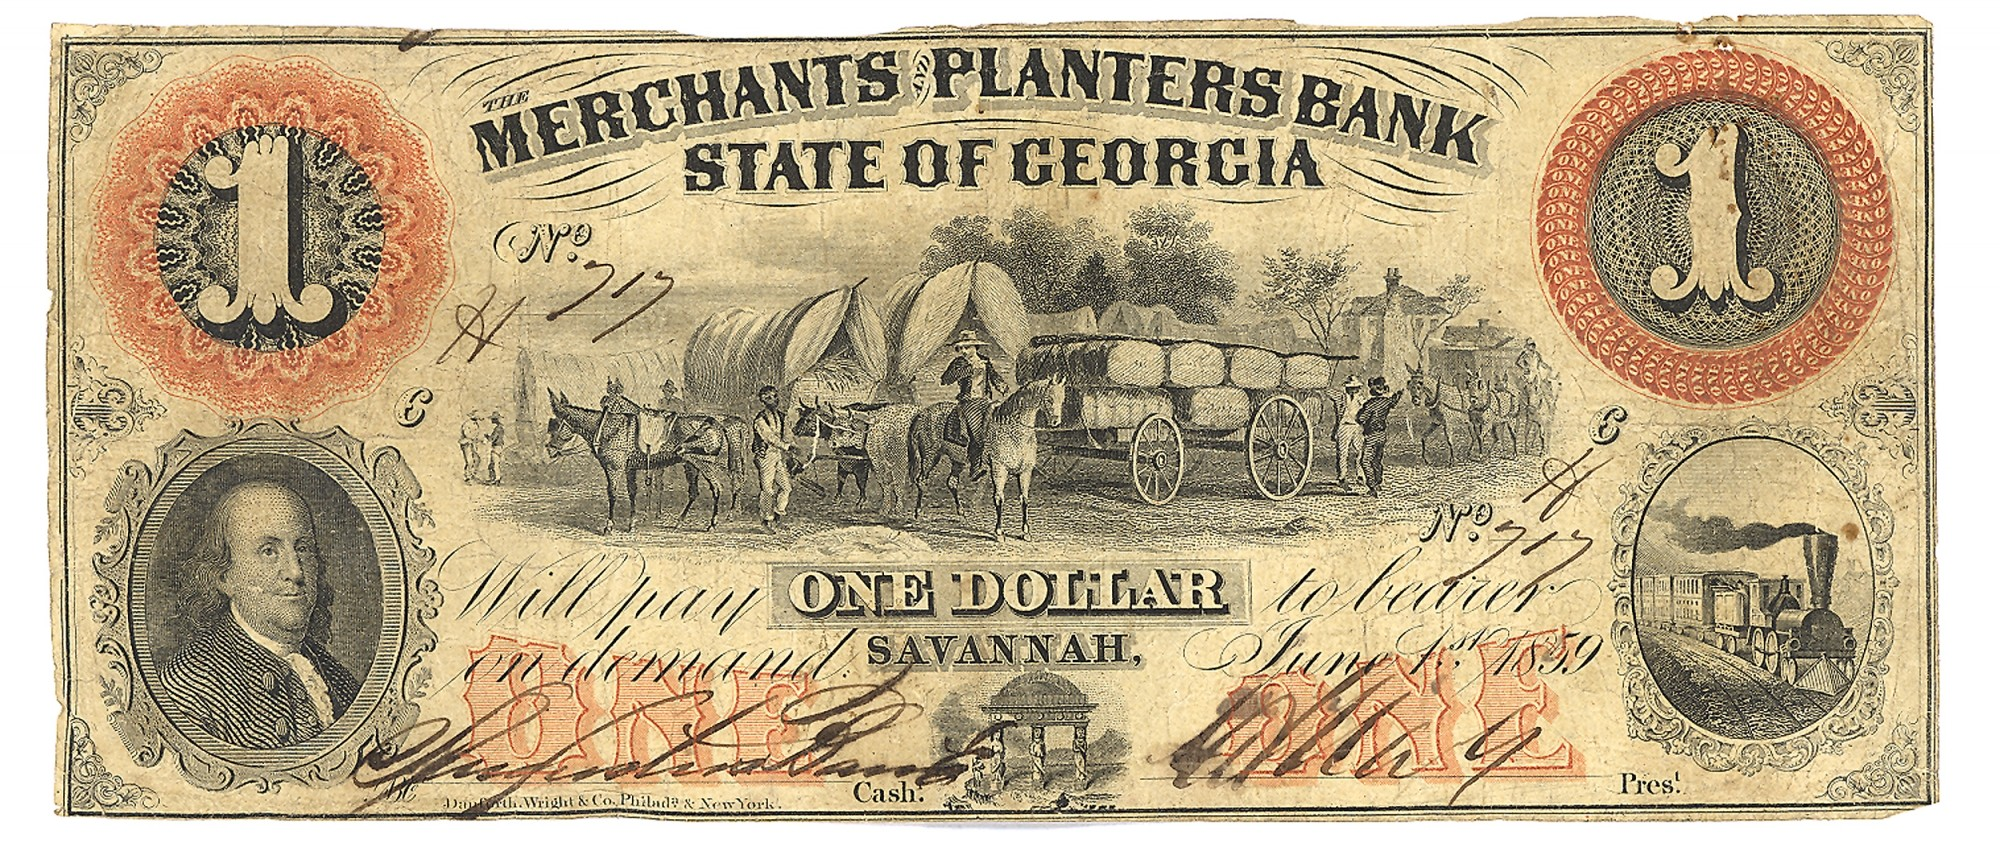 MERCHANTS AND PLANTERS BANK, SAVANNAH, GEORGIA, $1 NOTE